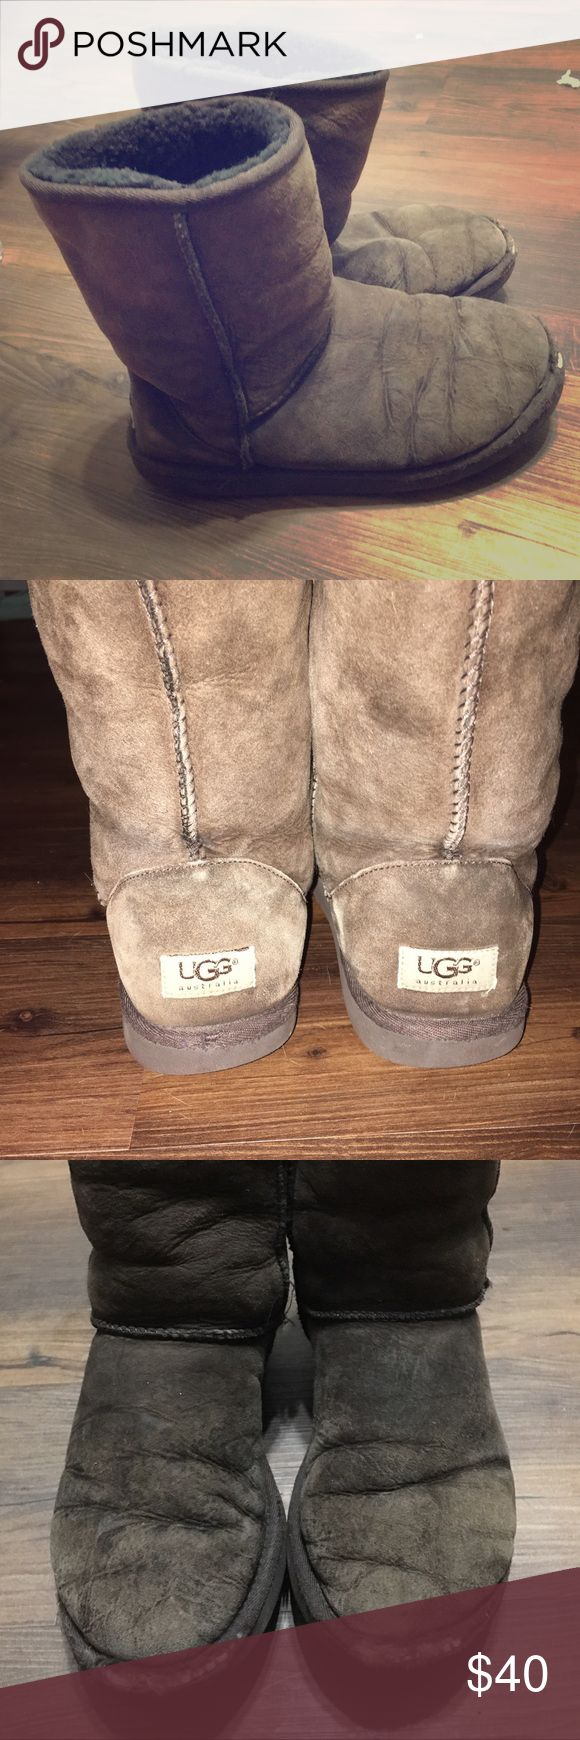 👢 Brown Uggs 👢 Used with scuffing at the toes. Priced accordingly, thank you for looking! UGG Shoes Winter & Rain Boots